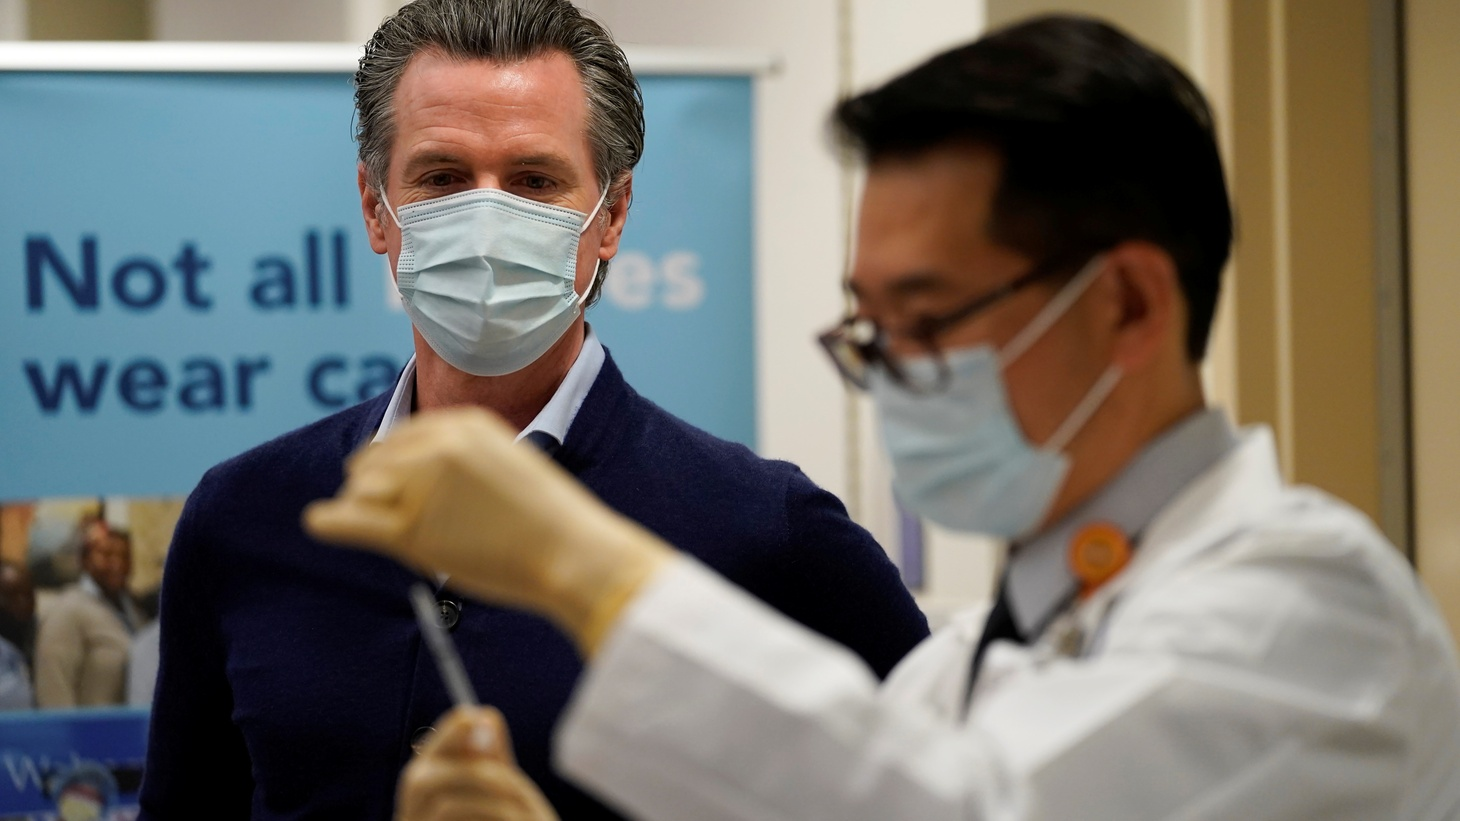 Gov. Gavin Newsom watches as the Pfizer-BioNTech COVID-19 vaccine is prepared by Director of Inpatient Pharmacy David Cheng at Kaiser Permanente Los Angeles Medical Center in Los Angeles, California, U.S. December 14, 2020.